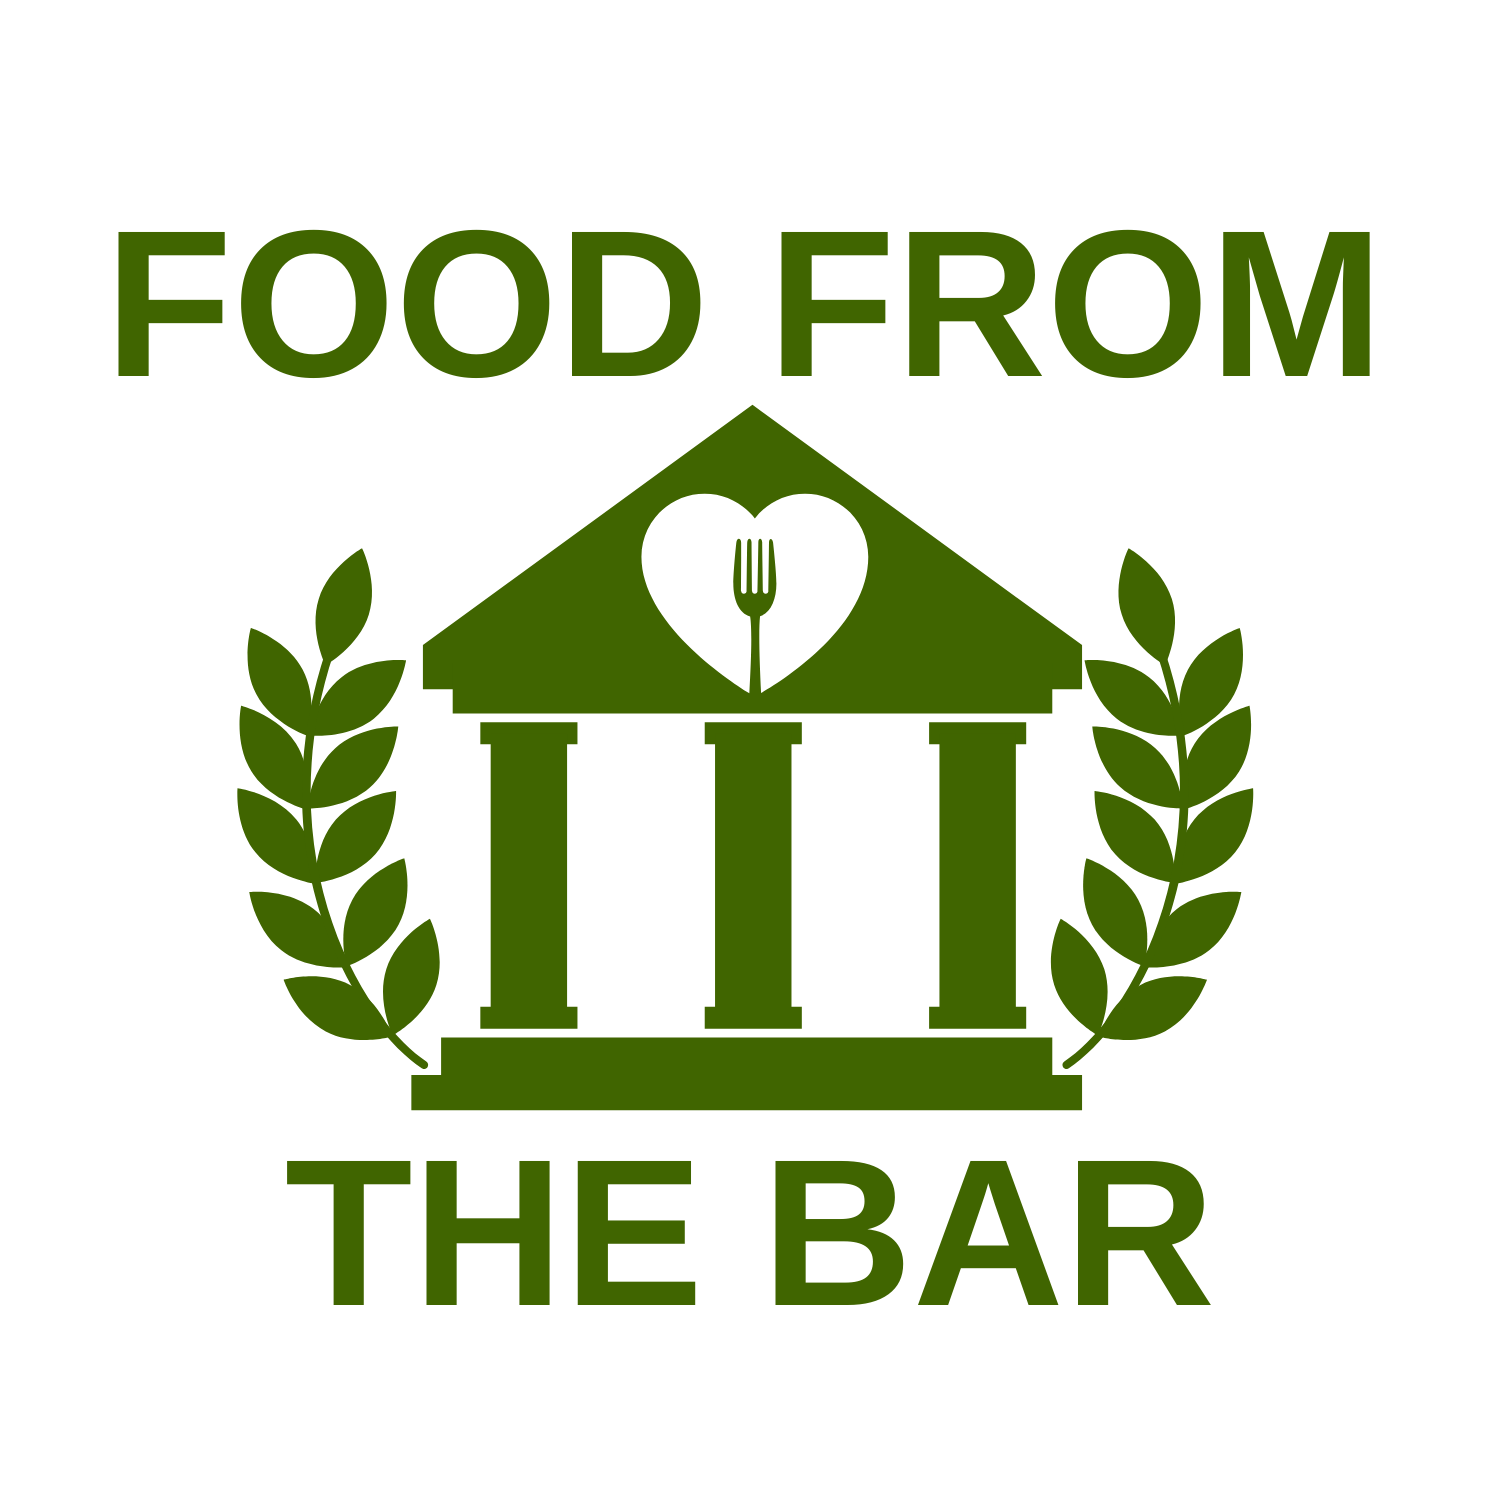 Food from the bar logo %282%29